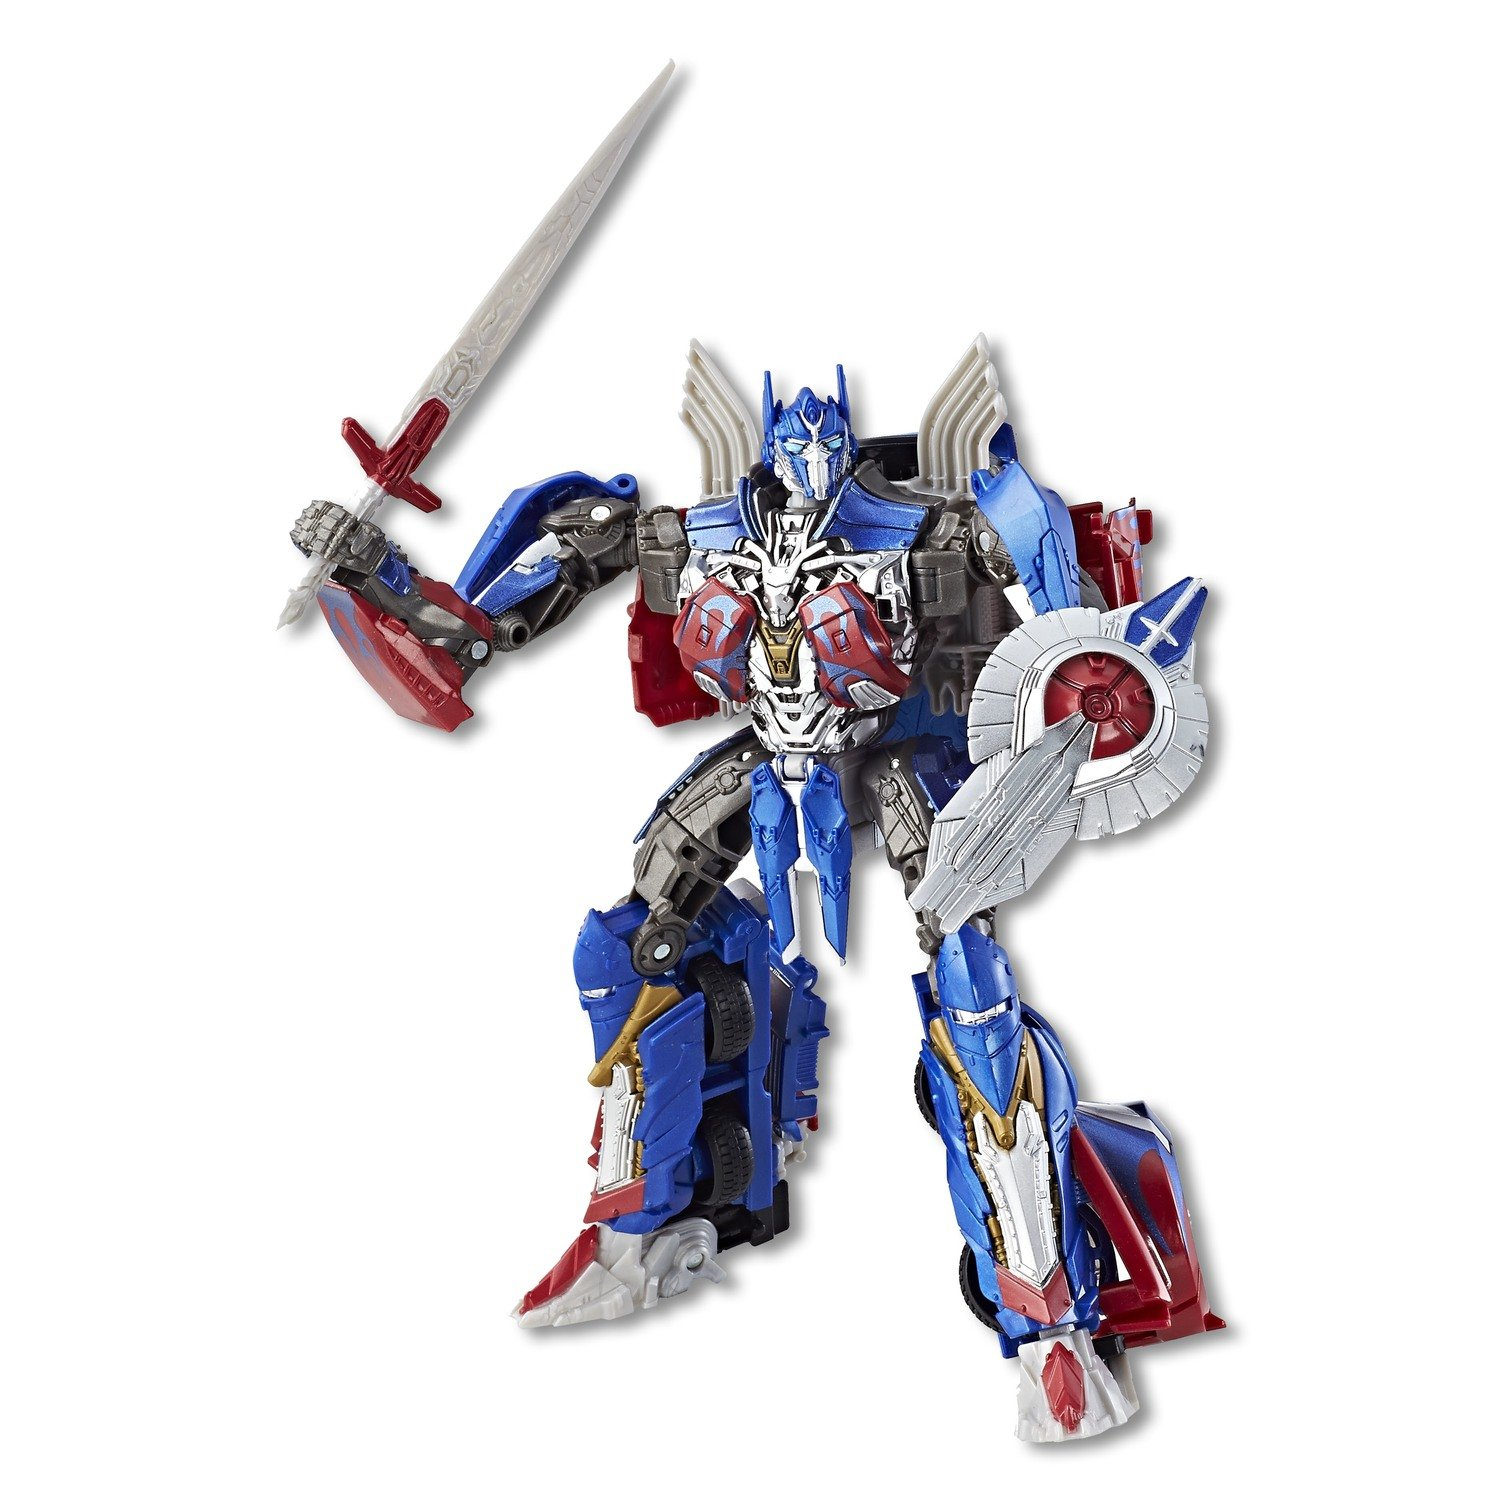 Hasbro SDCC 2017 Exclusive Transformers: The Last Knight Voyager Class Oprimus Prime